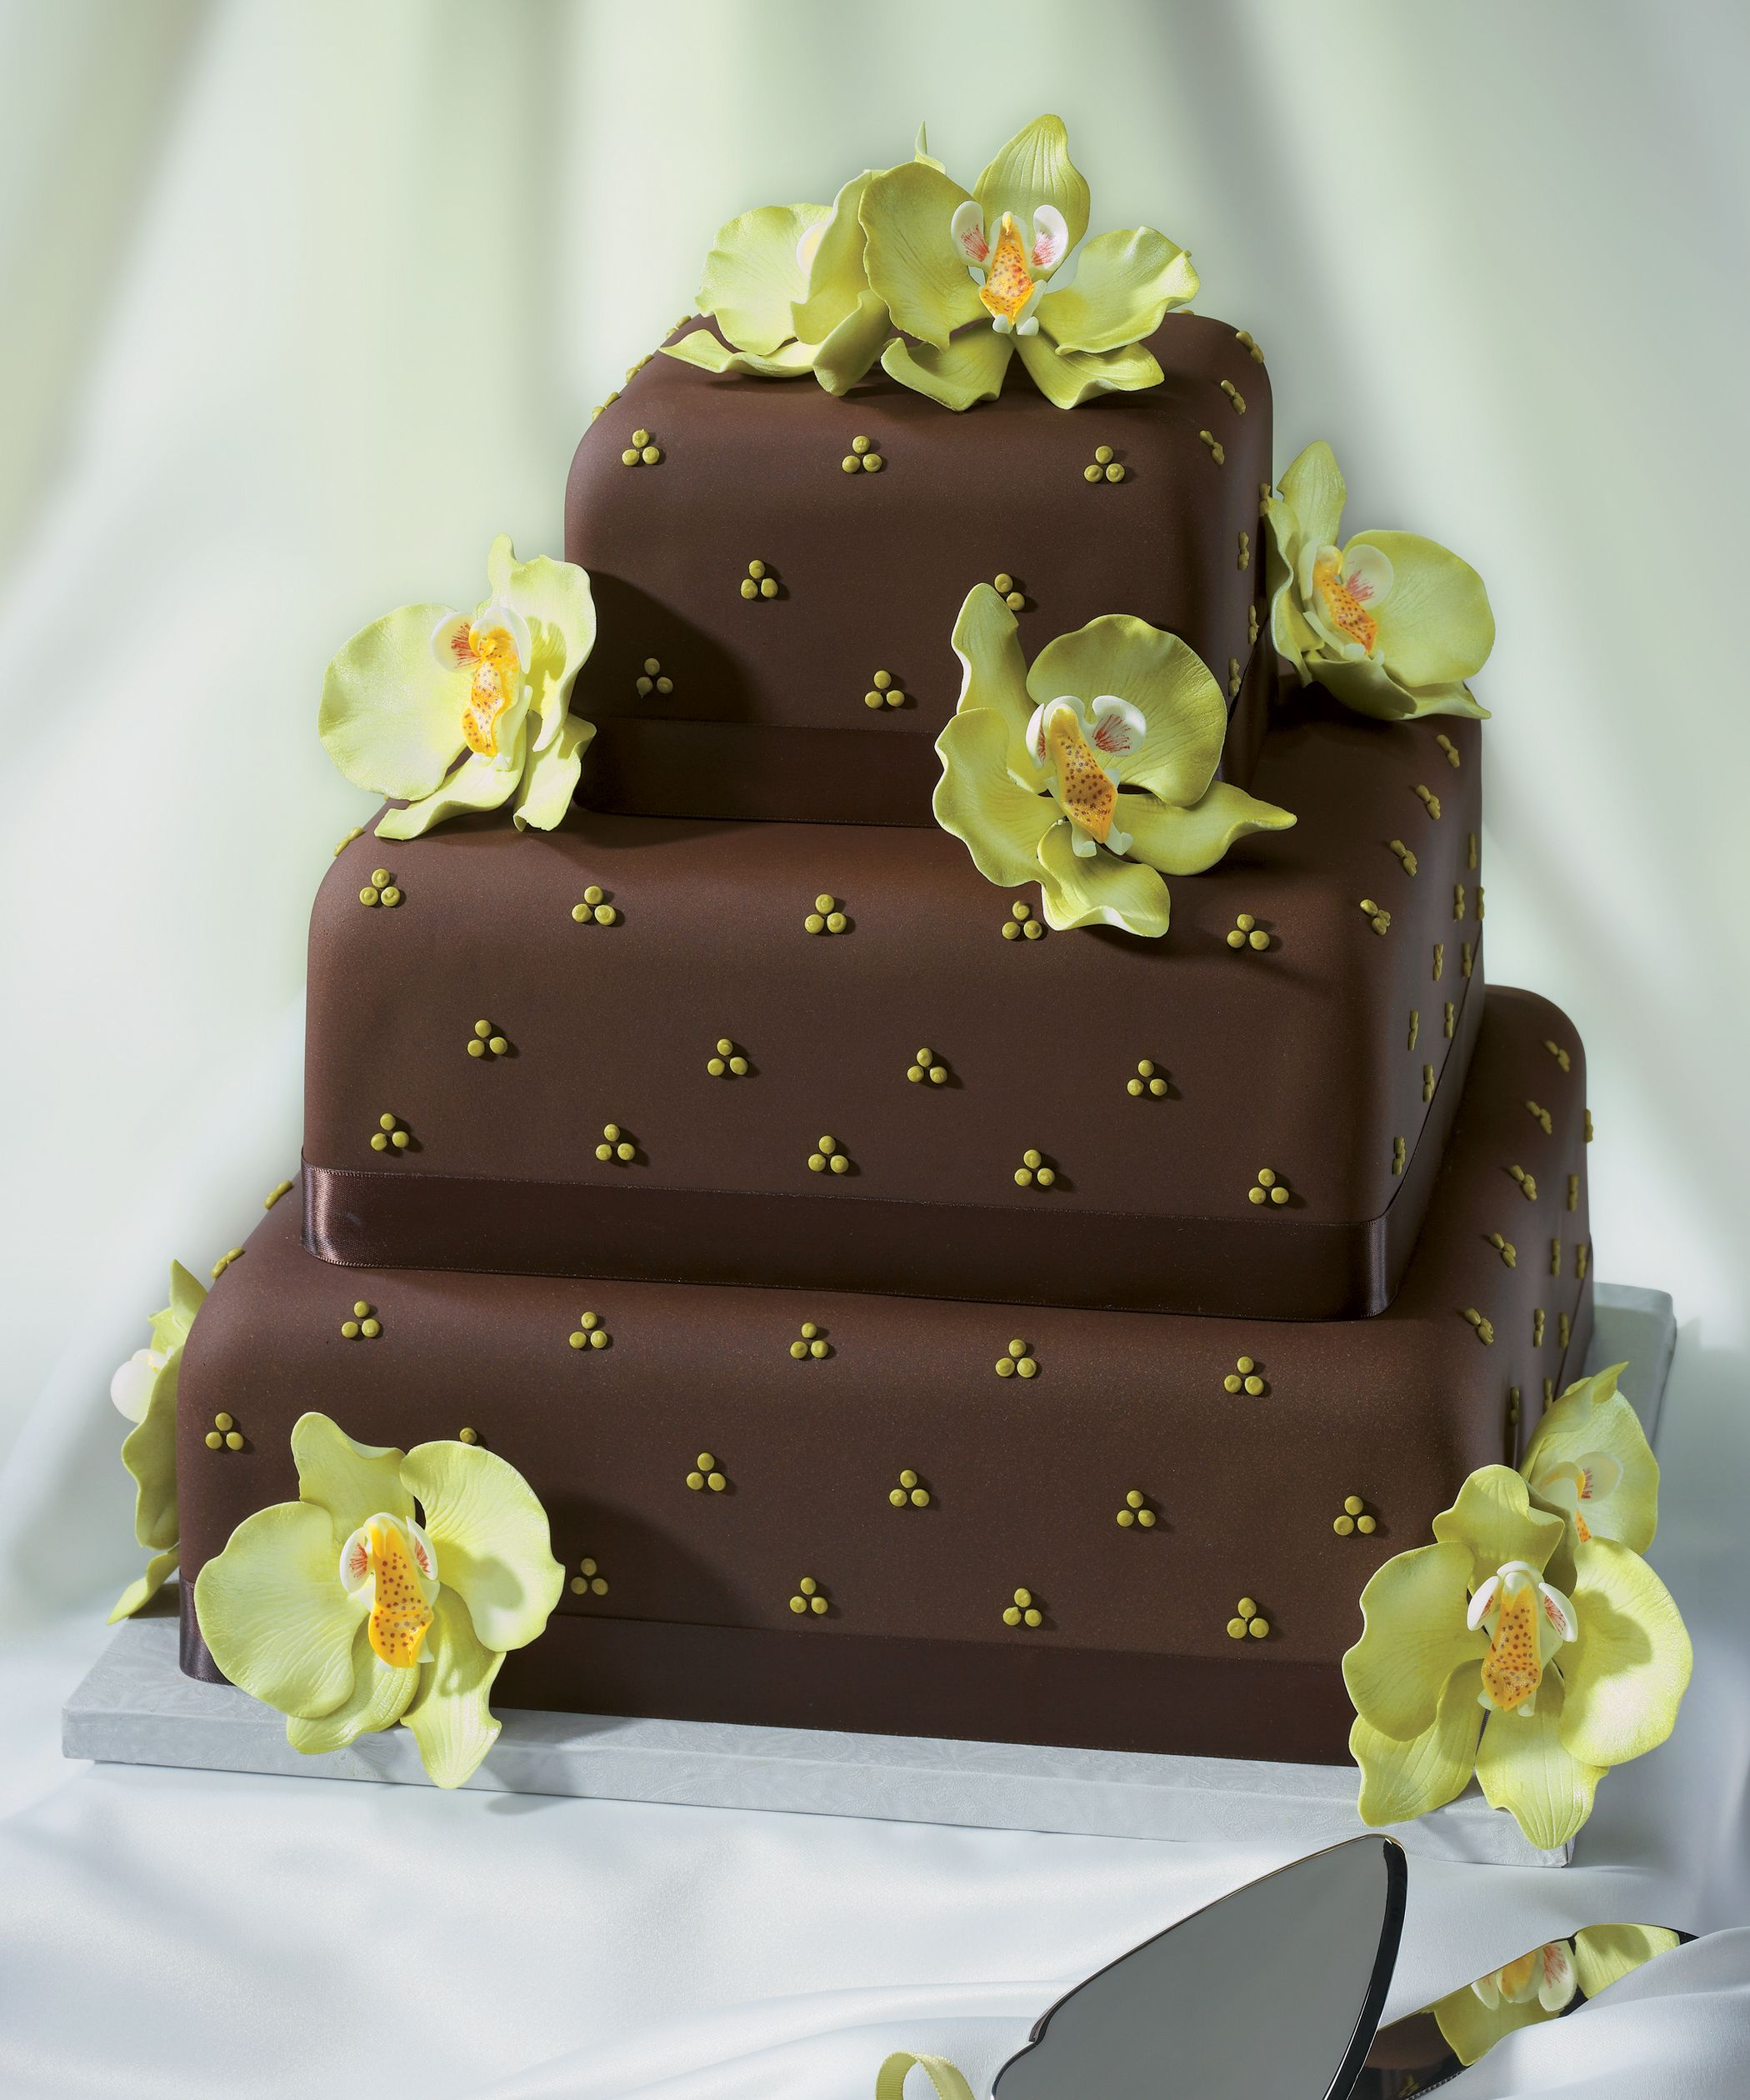 Chocolate Wedding Cake With Gum Paste Orchids From Decopac